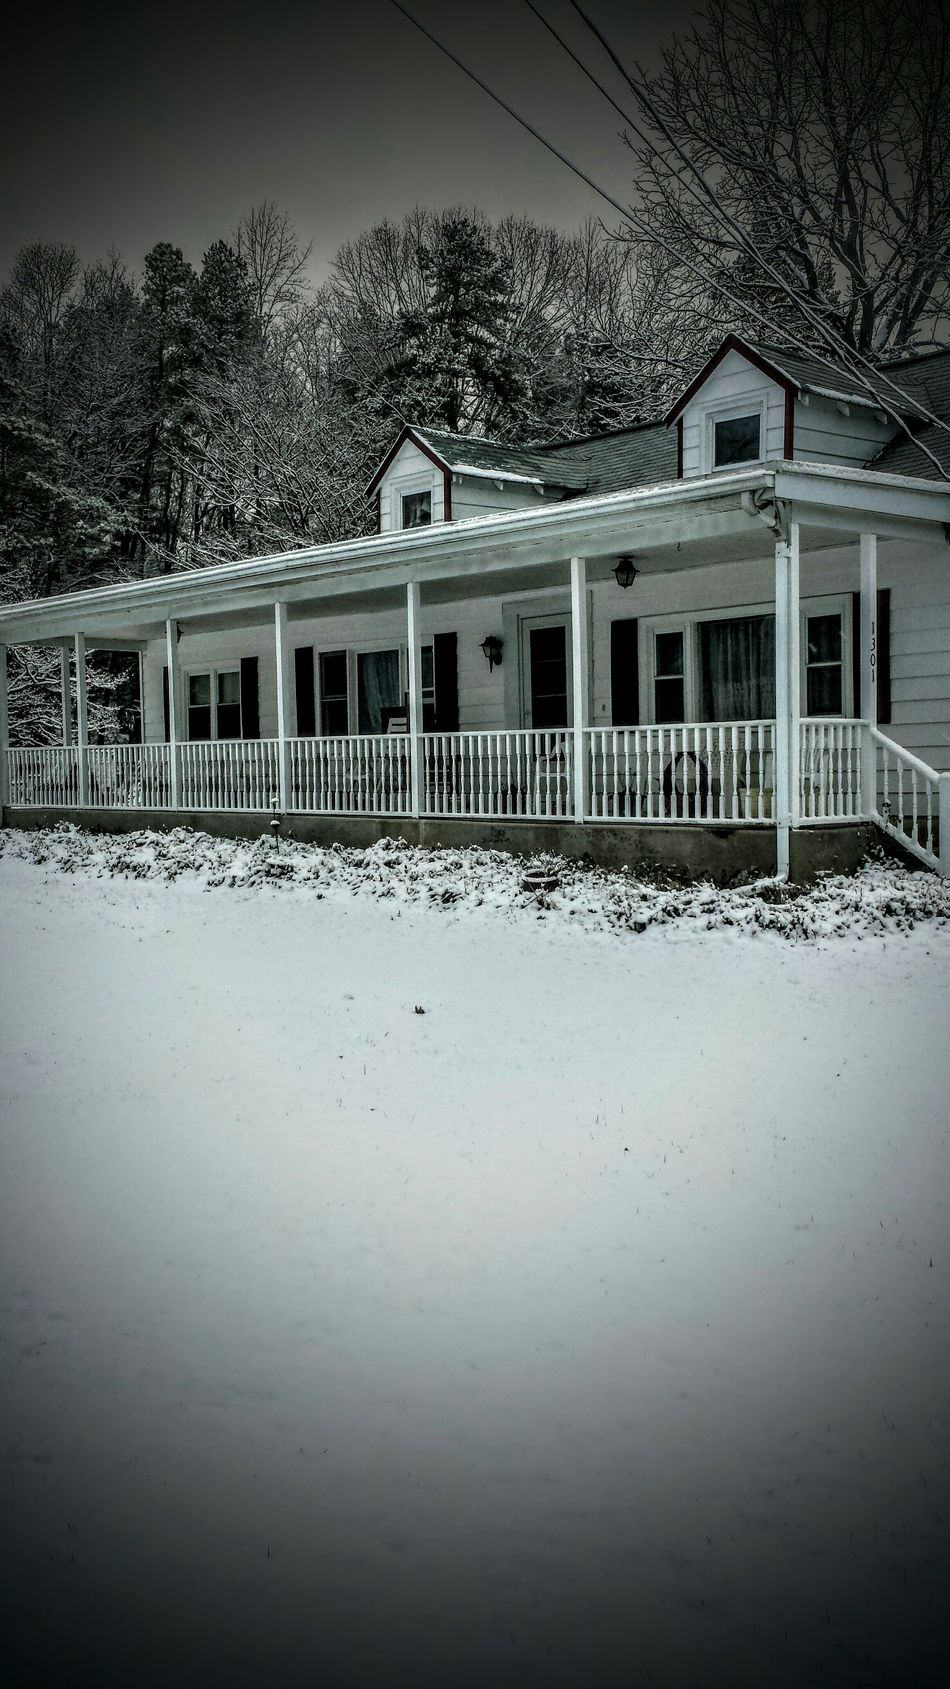 Home Sweet Home Learn & Shoot: Simplicity Where Dreams Come True The Long Cold Lonely Winter